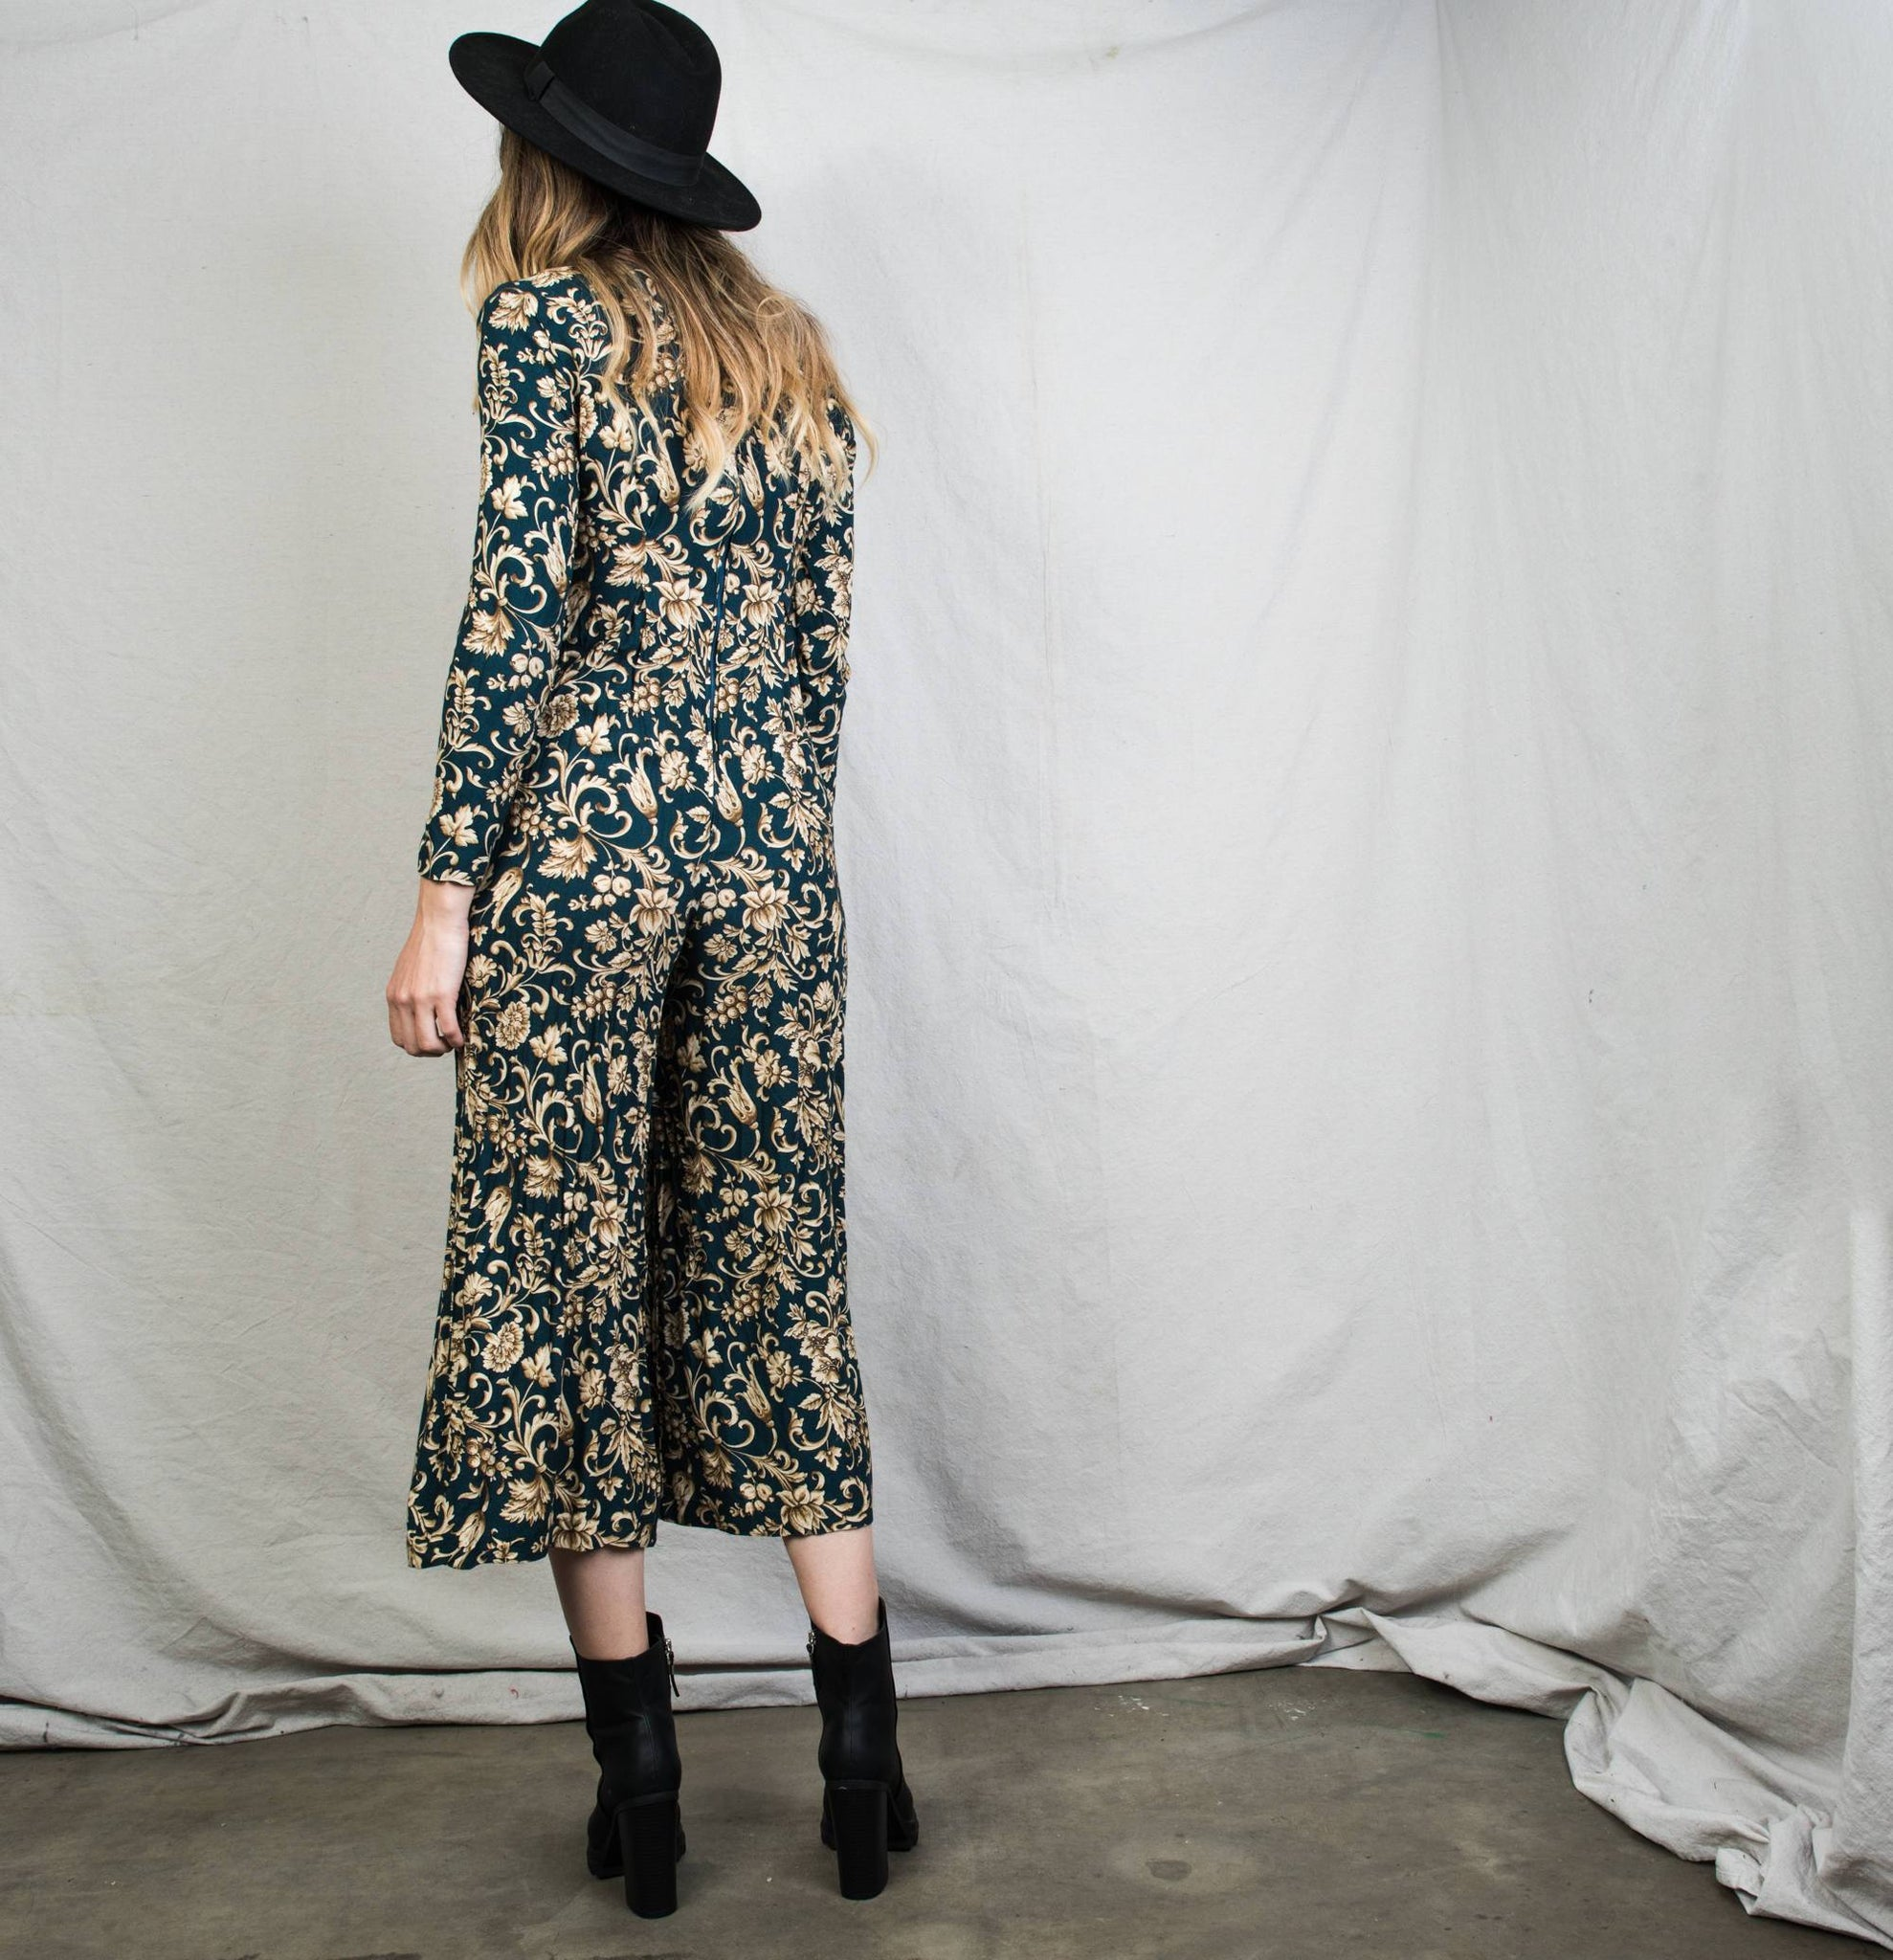 Vintage Long Sleeve Floral Jumper / XS/S - Closed Caption